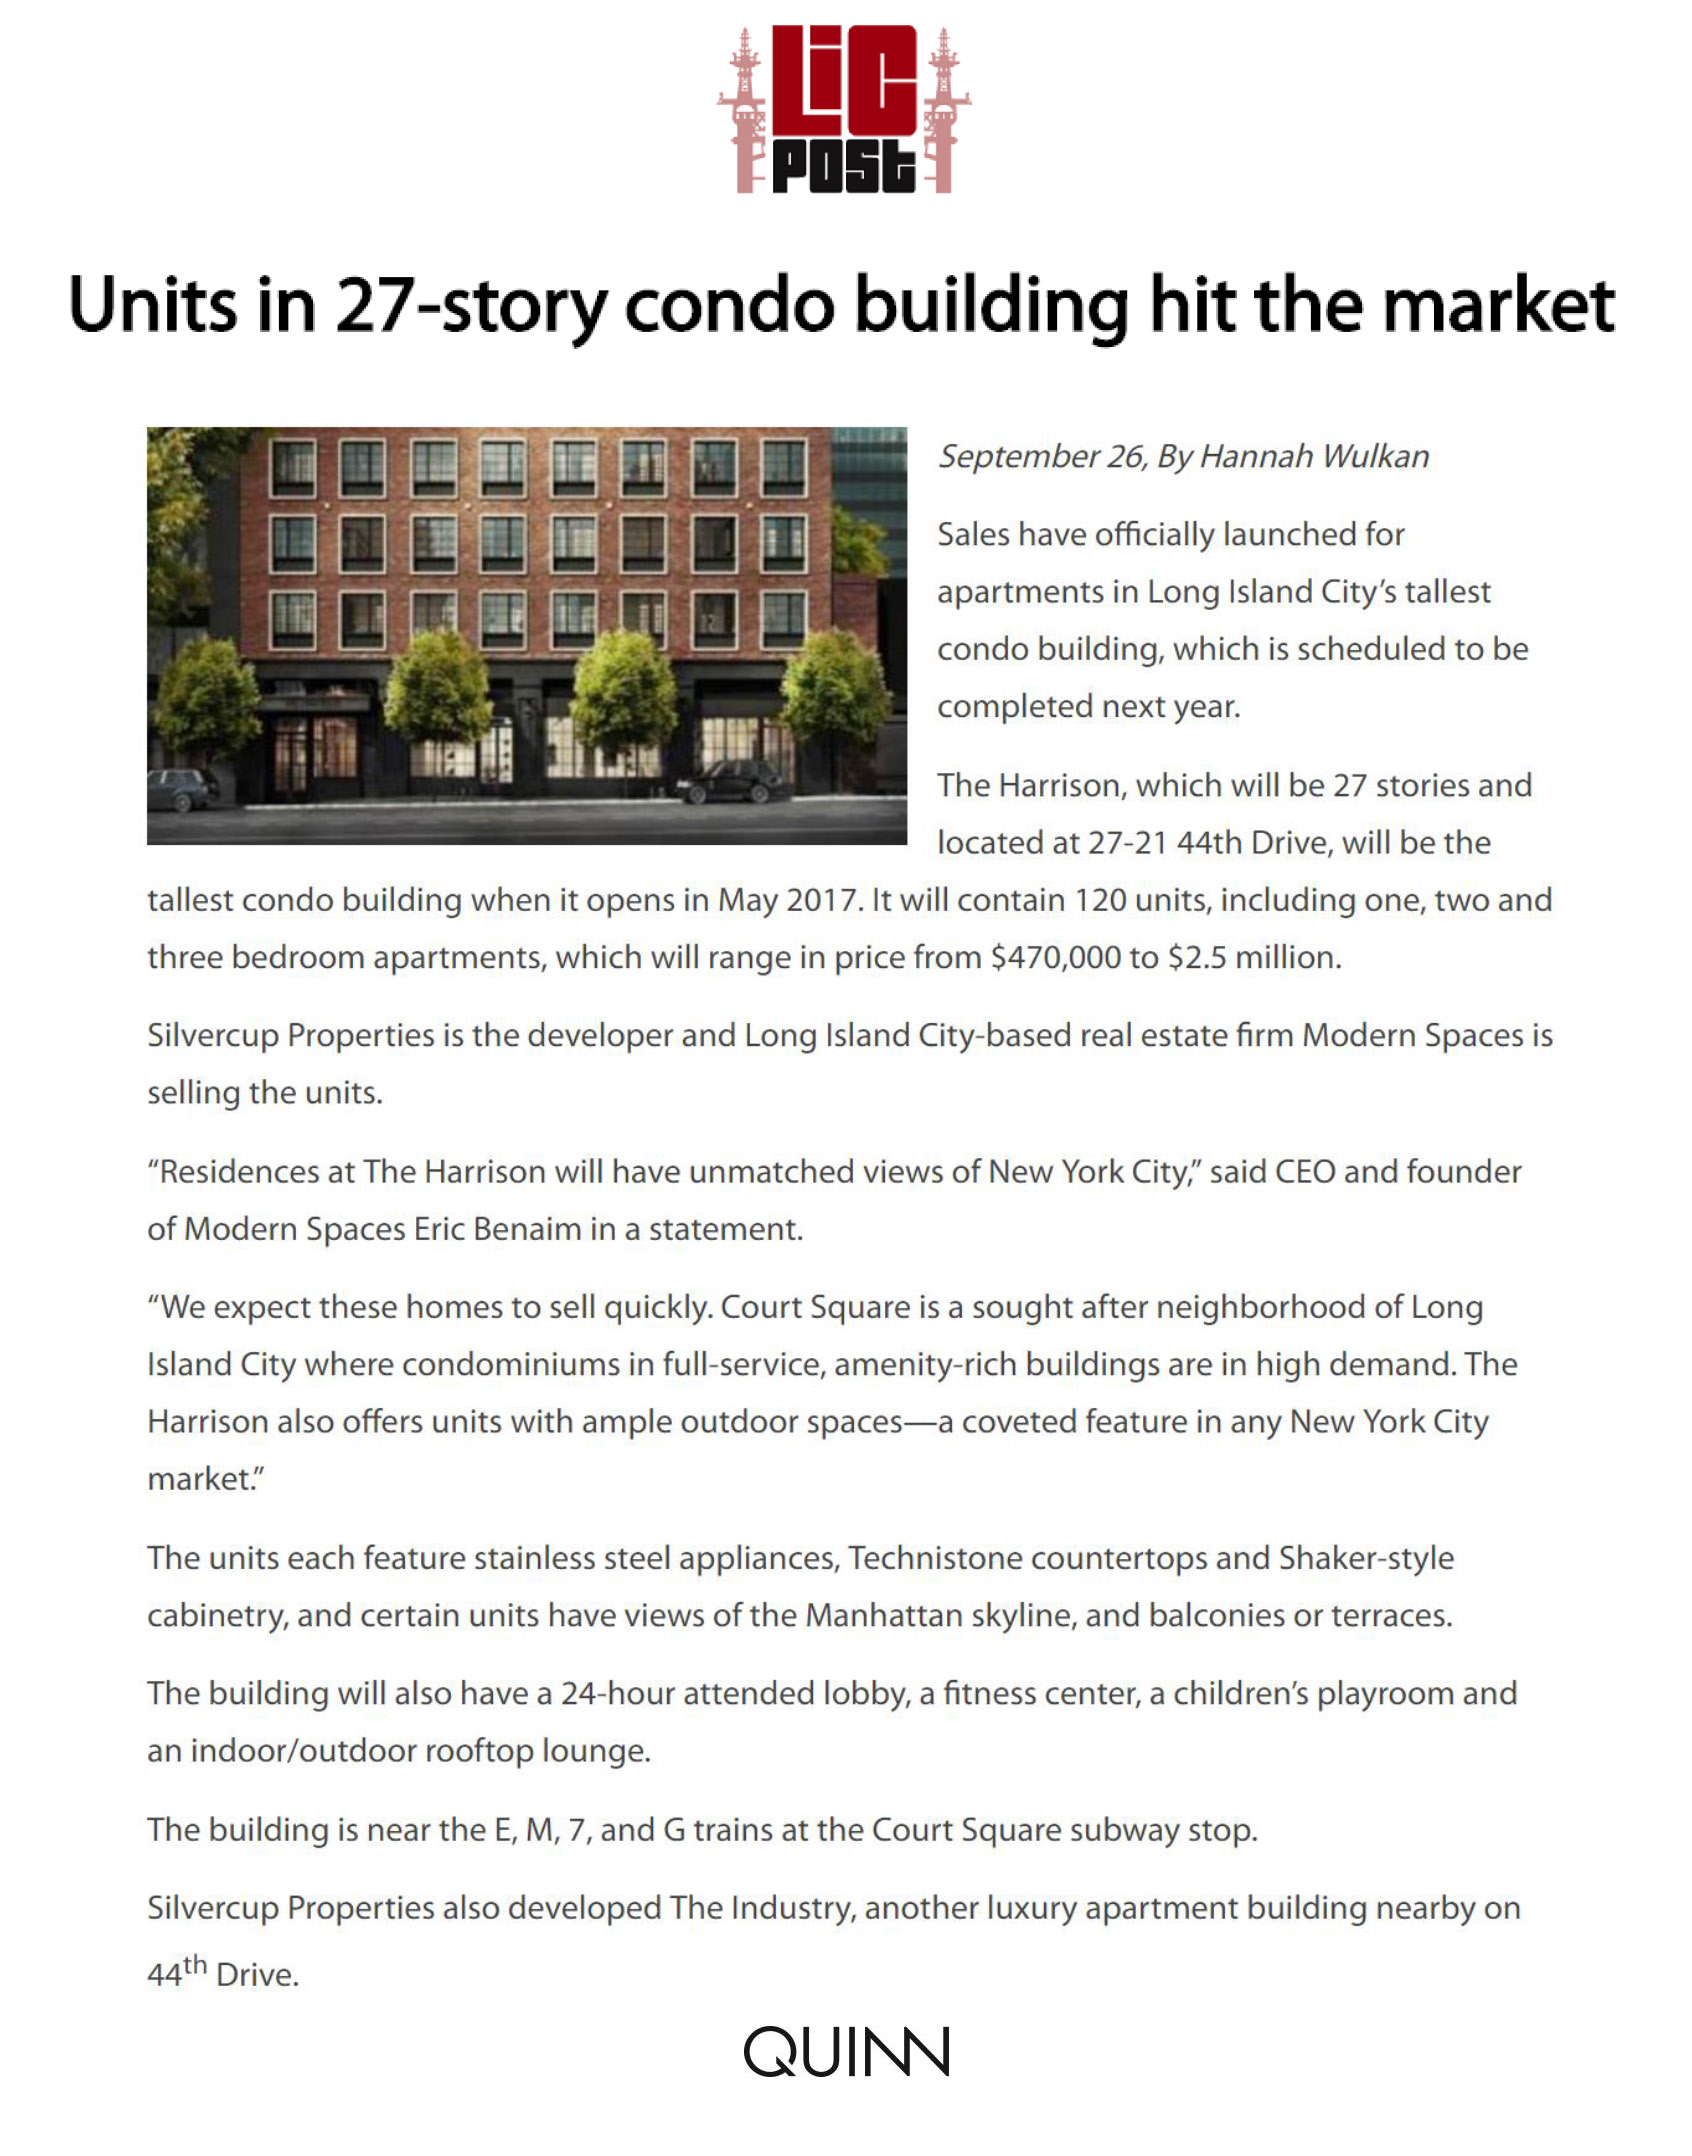 lic-post-units-in-27-story-condo-building-hit-the-market-9-26-16